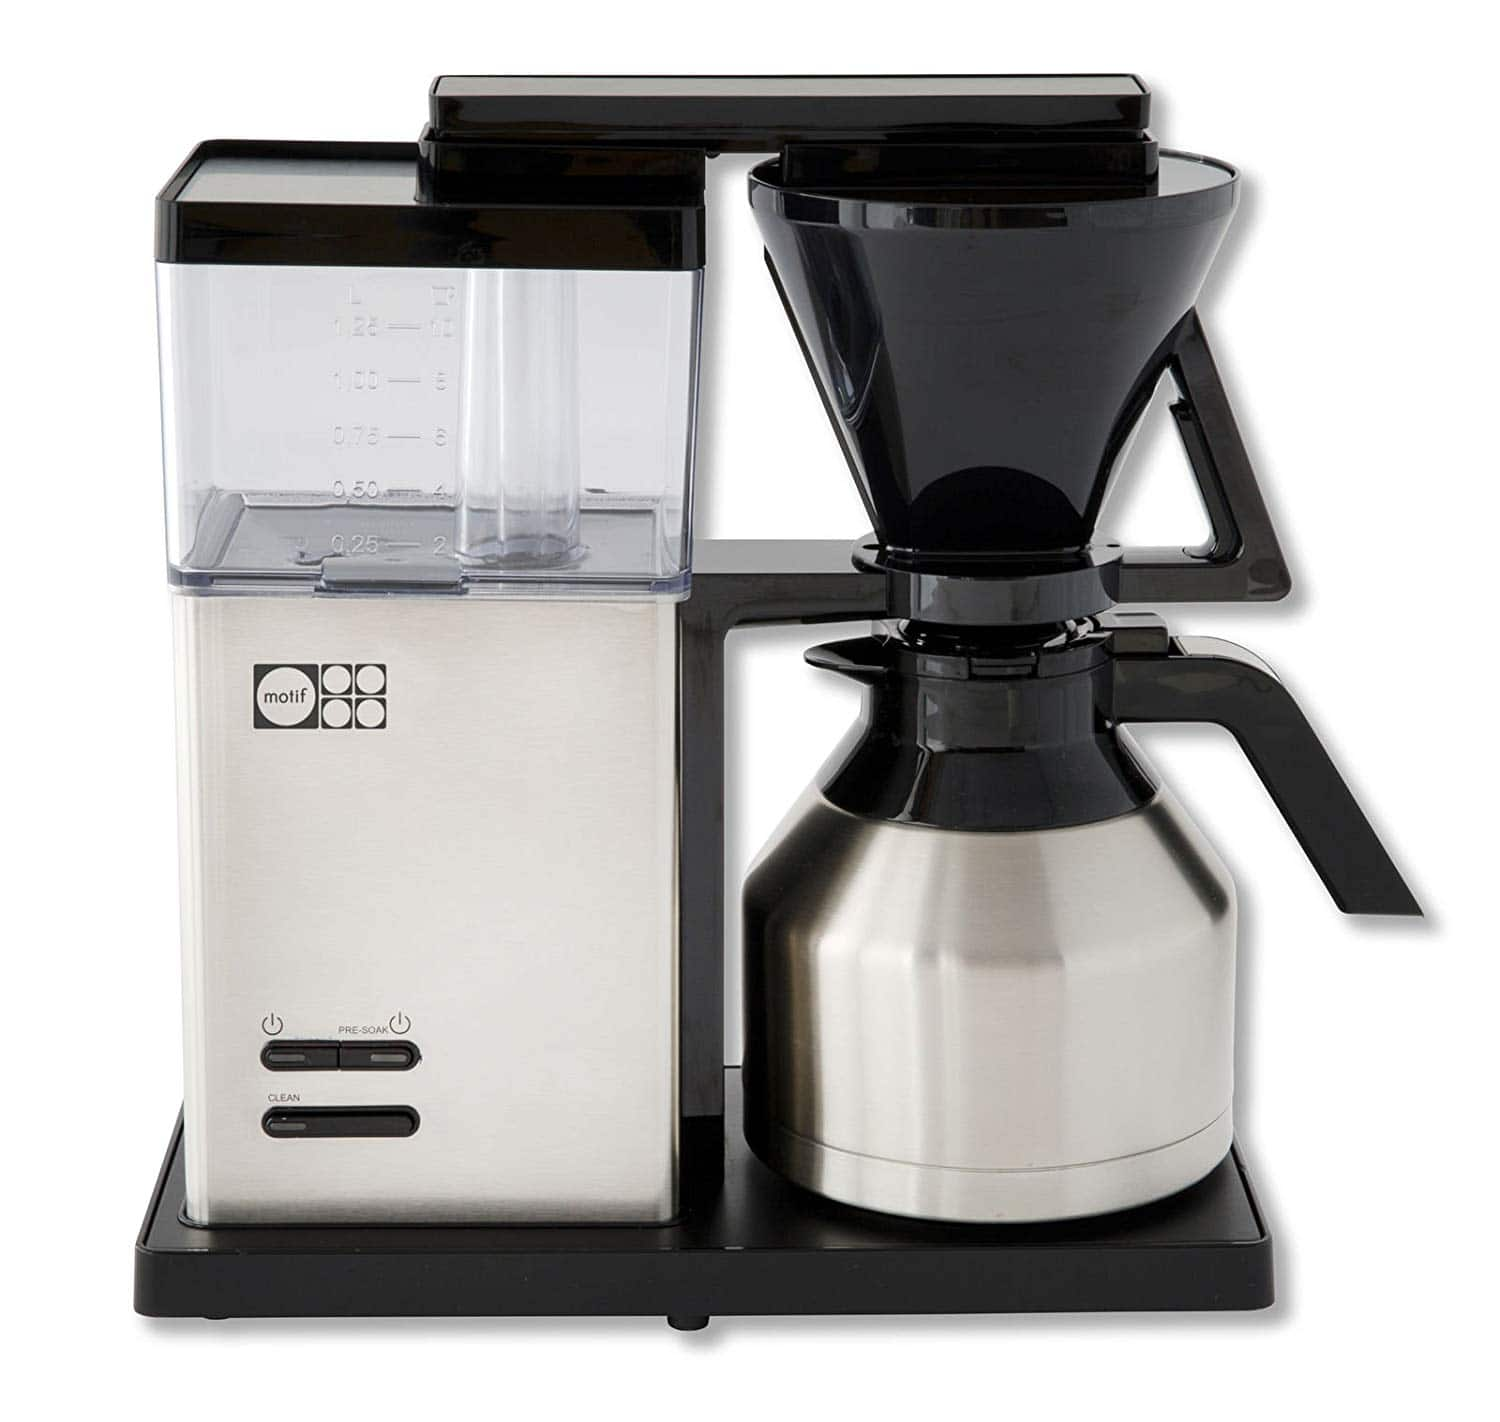 Motif Essential Pour Over Coffee Brewer w/ Thermal Carafe $49